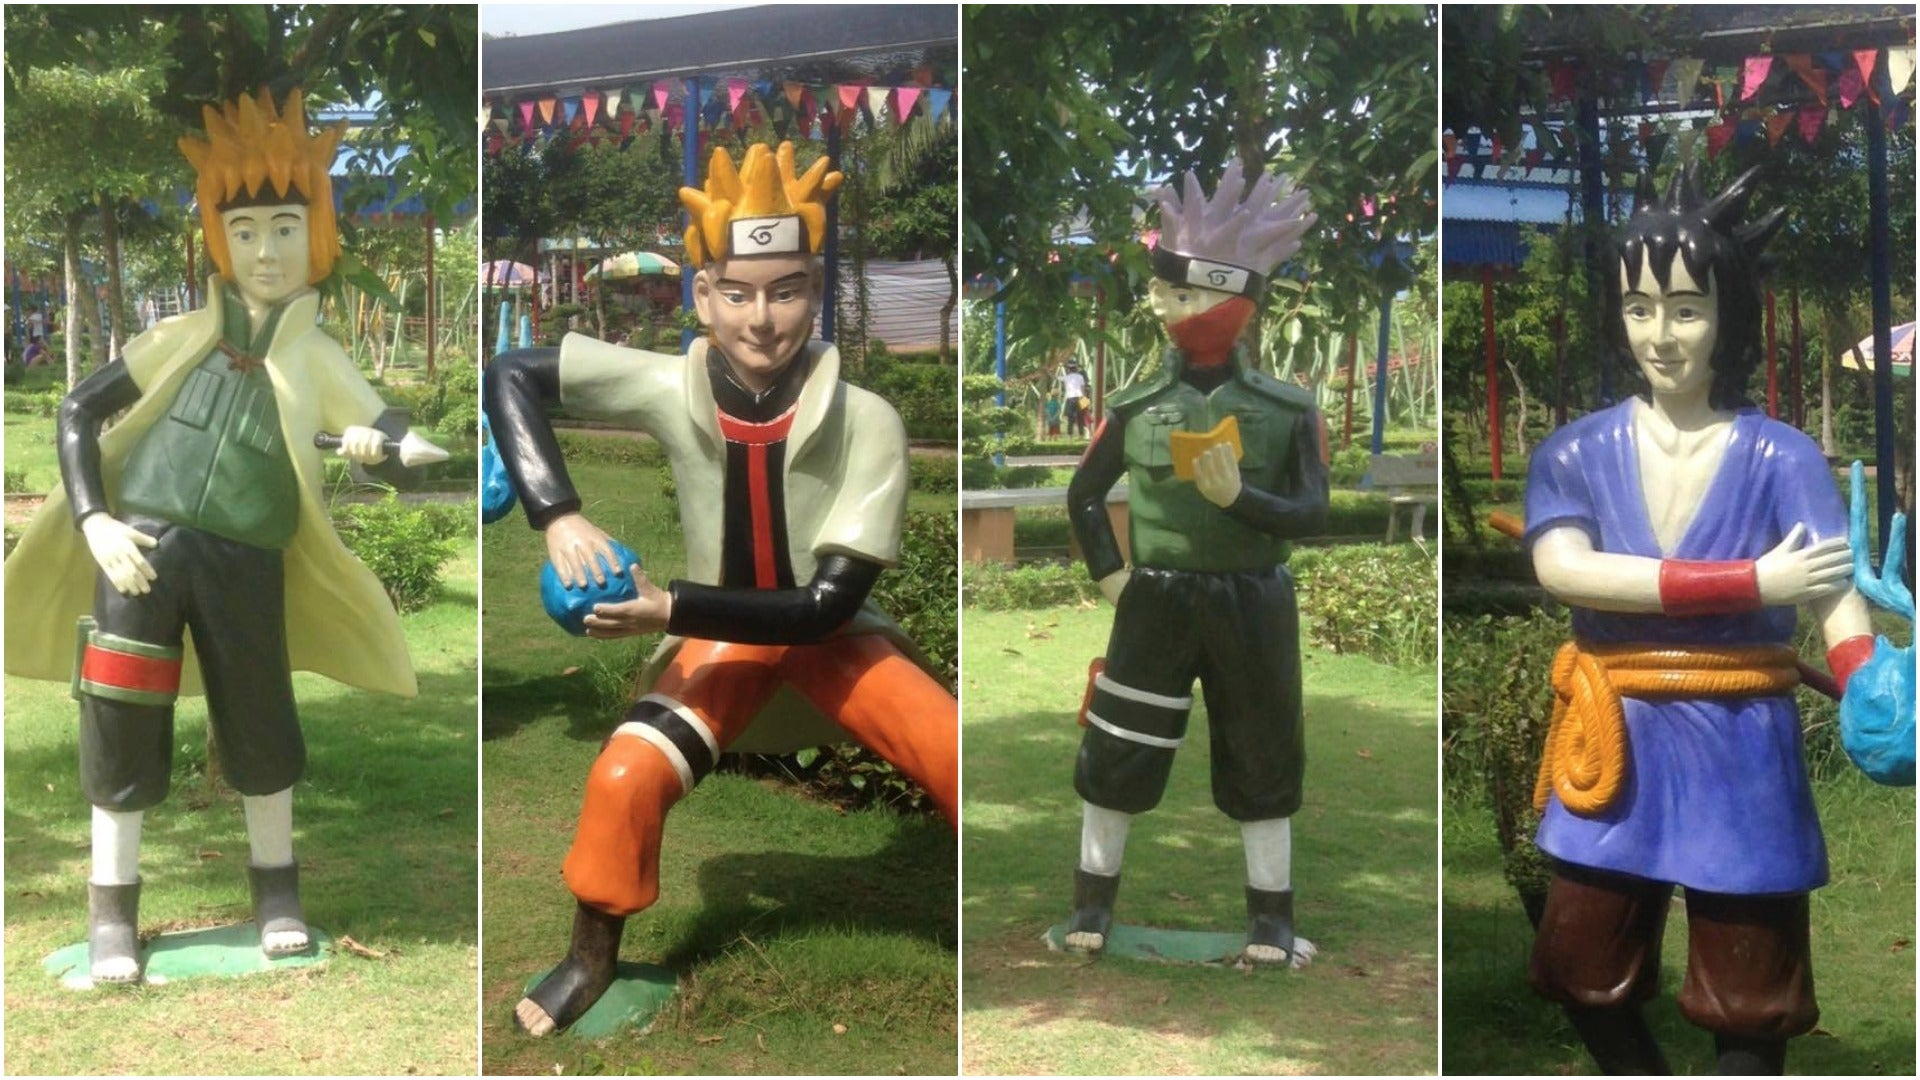 For Naruto Knock-Offs, These Statues Are Very Bad